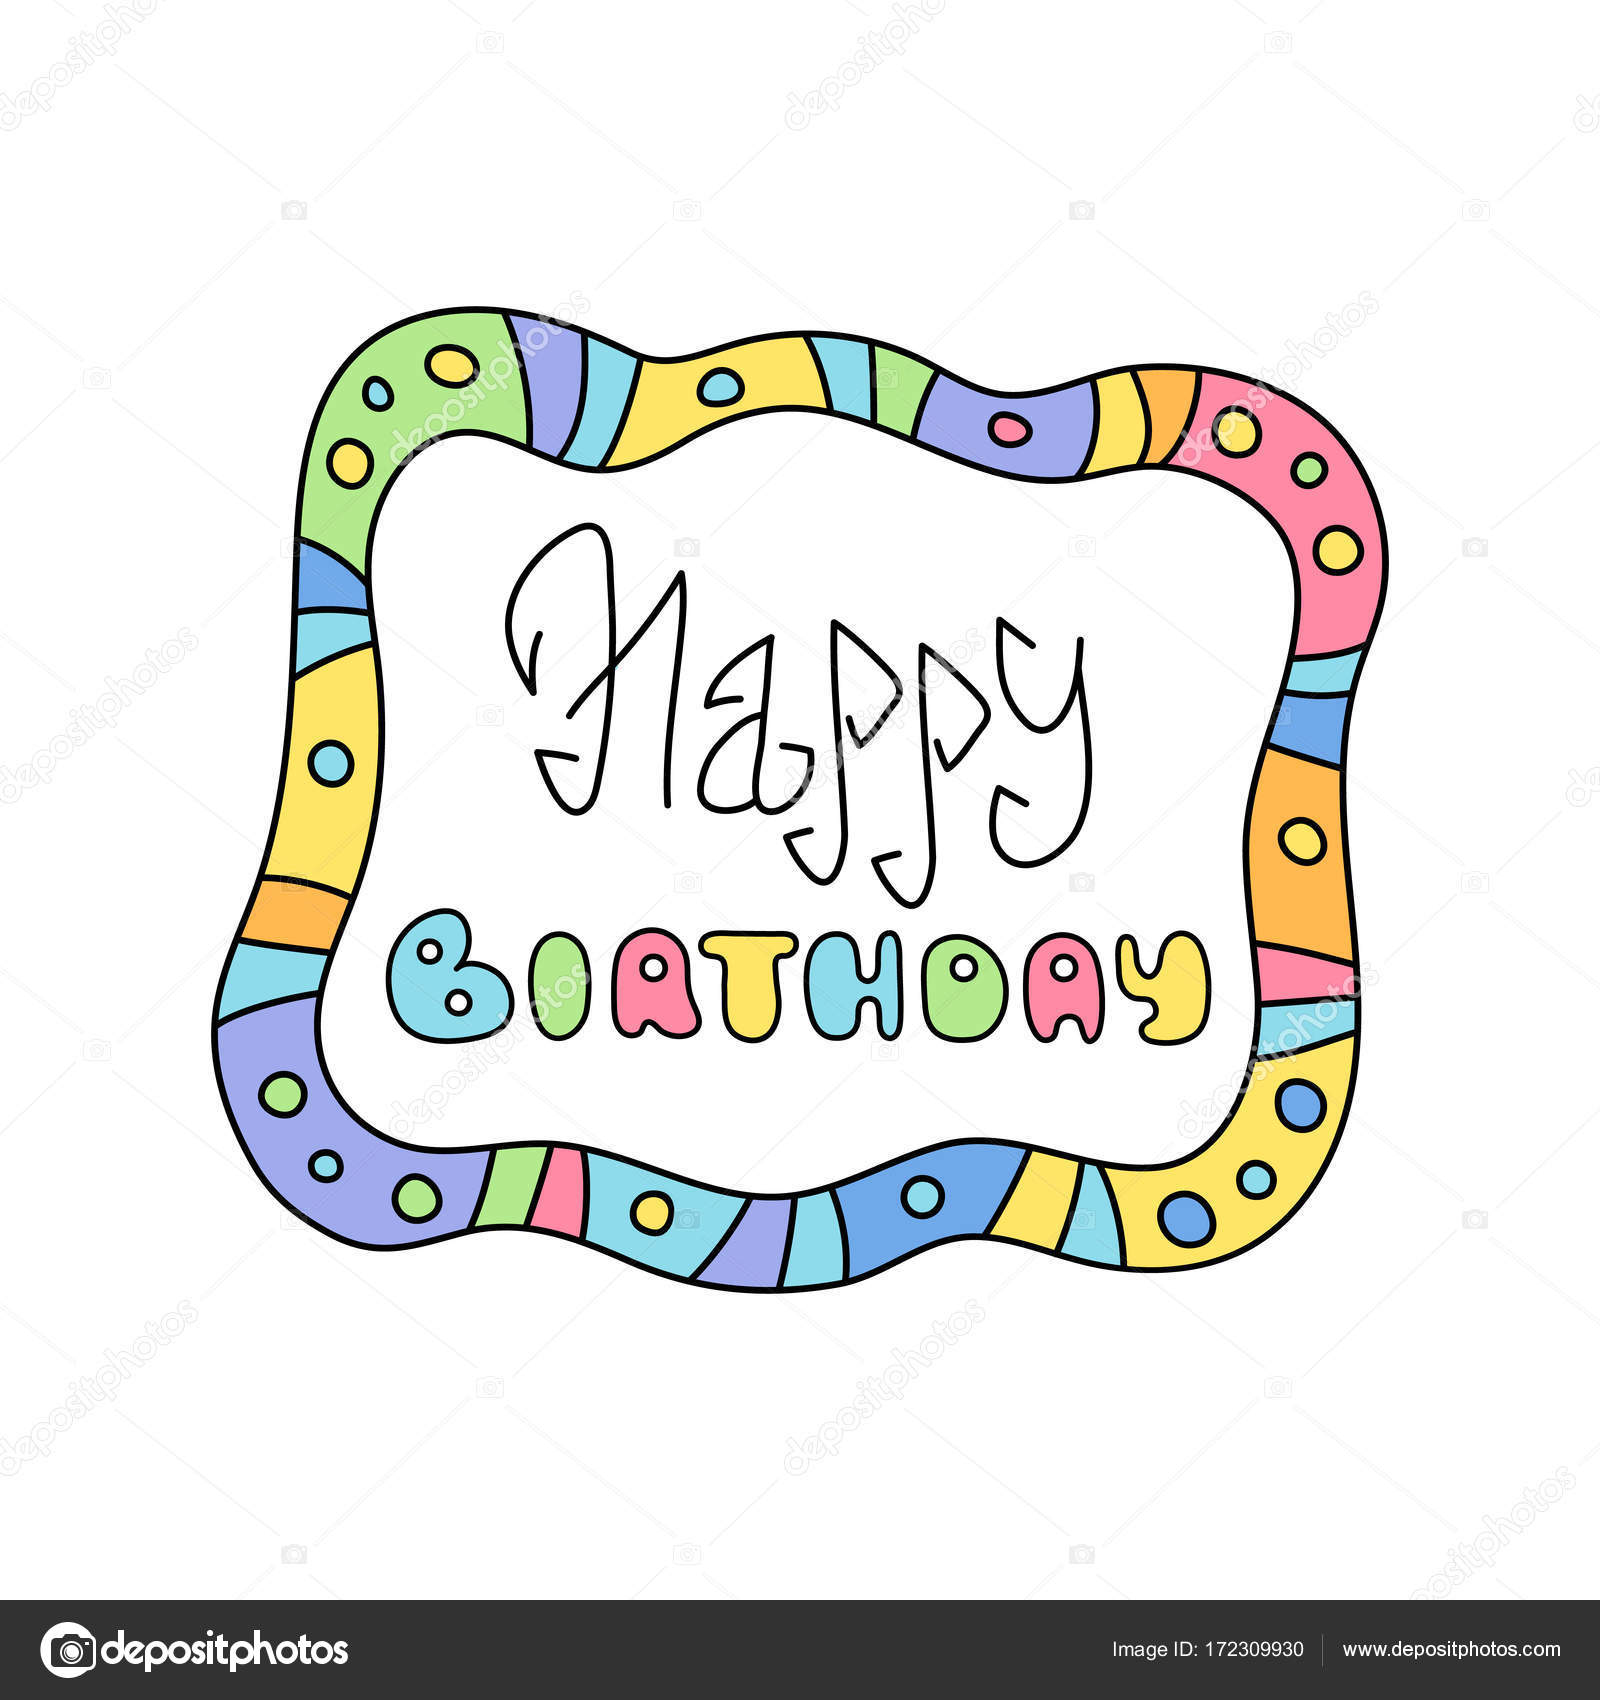 happy birthday sticker line ; depositphotos_172309930-stock-illustration-happy-birthday-cute-colorful-childish